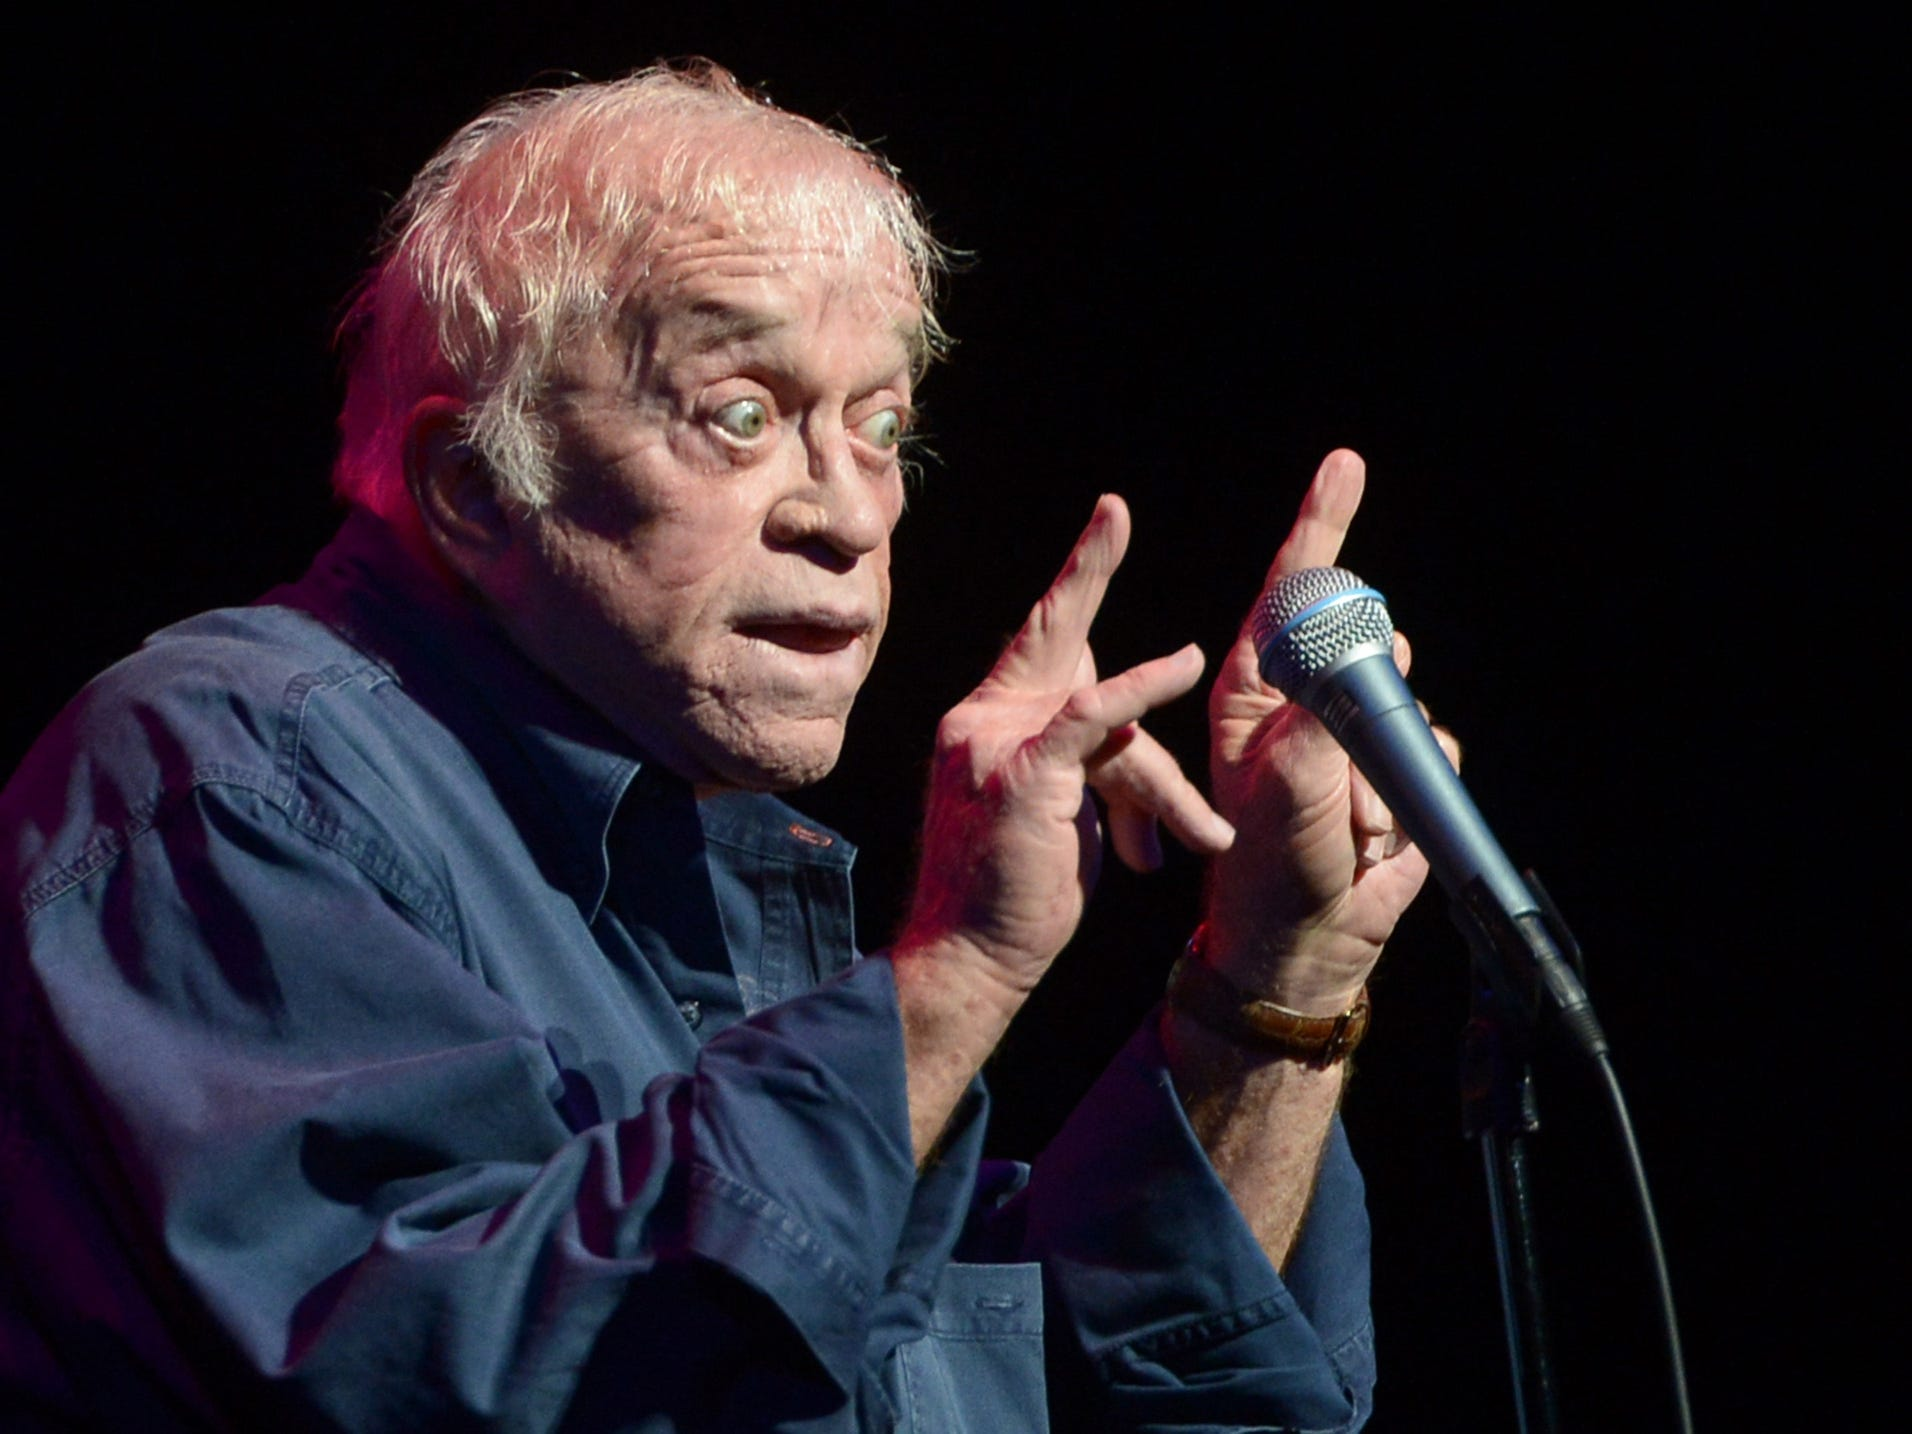 OCT. 28